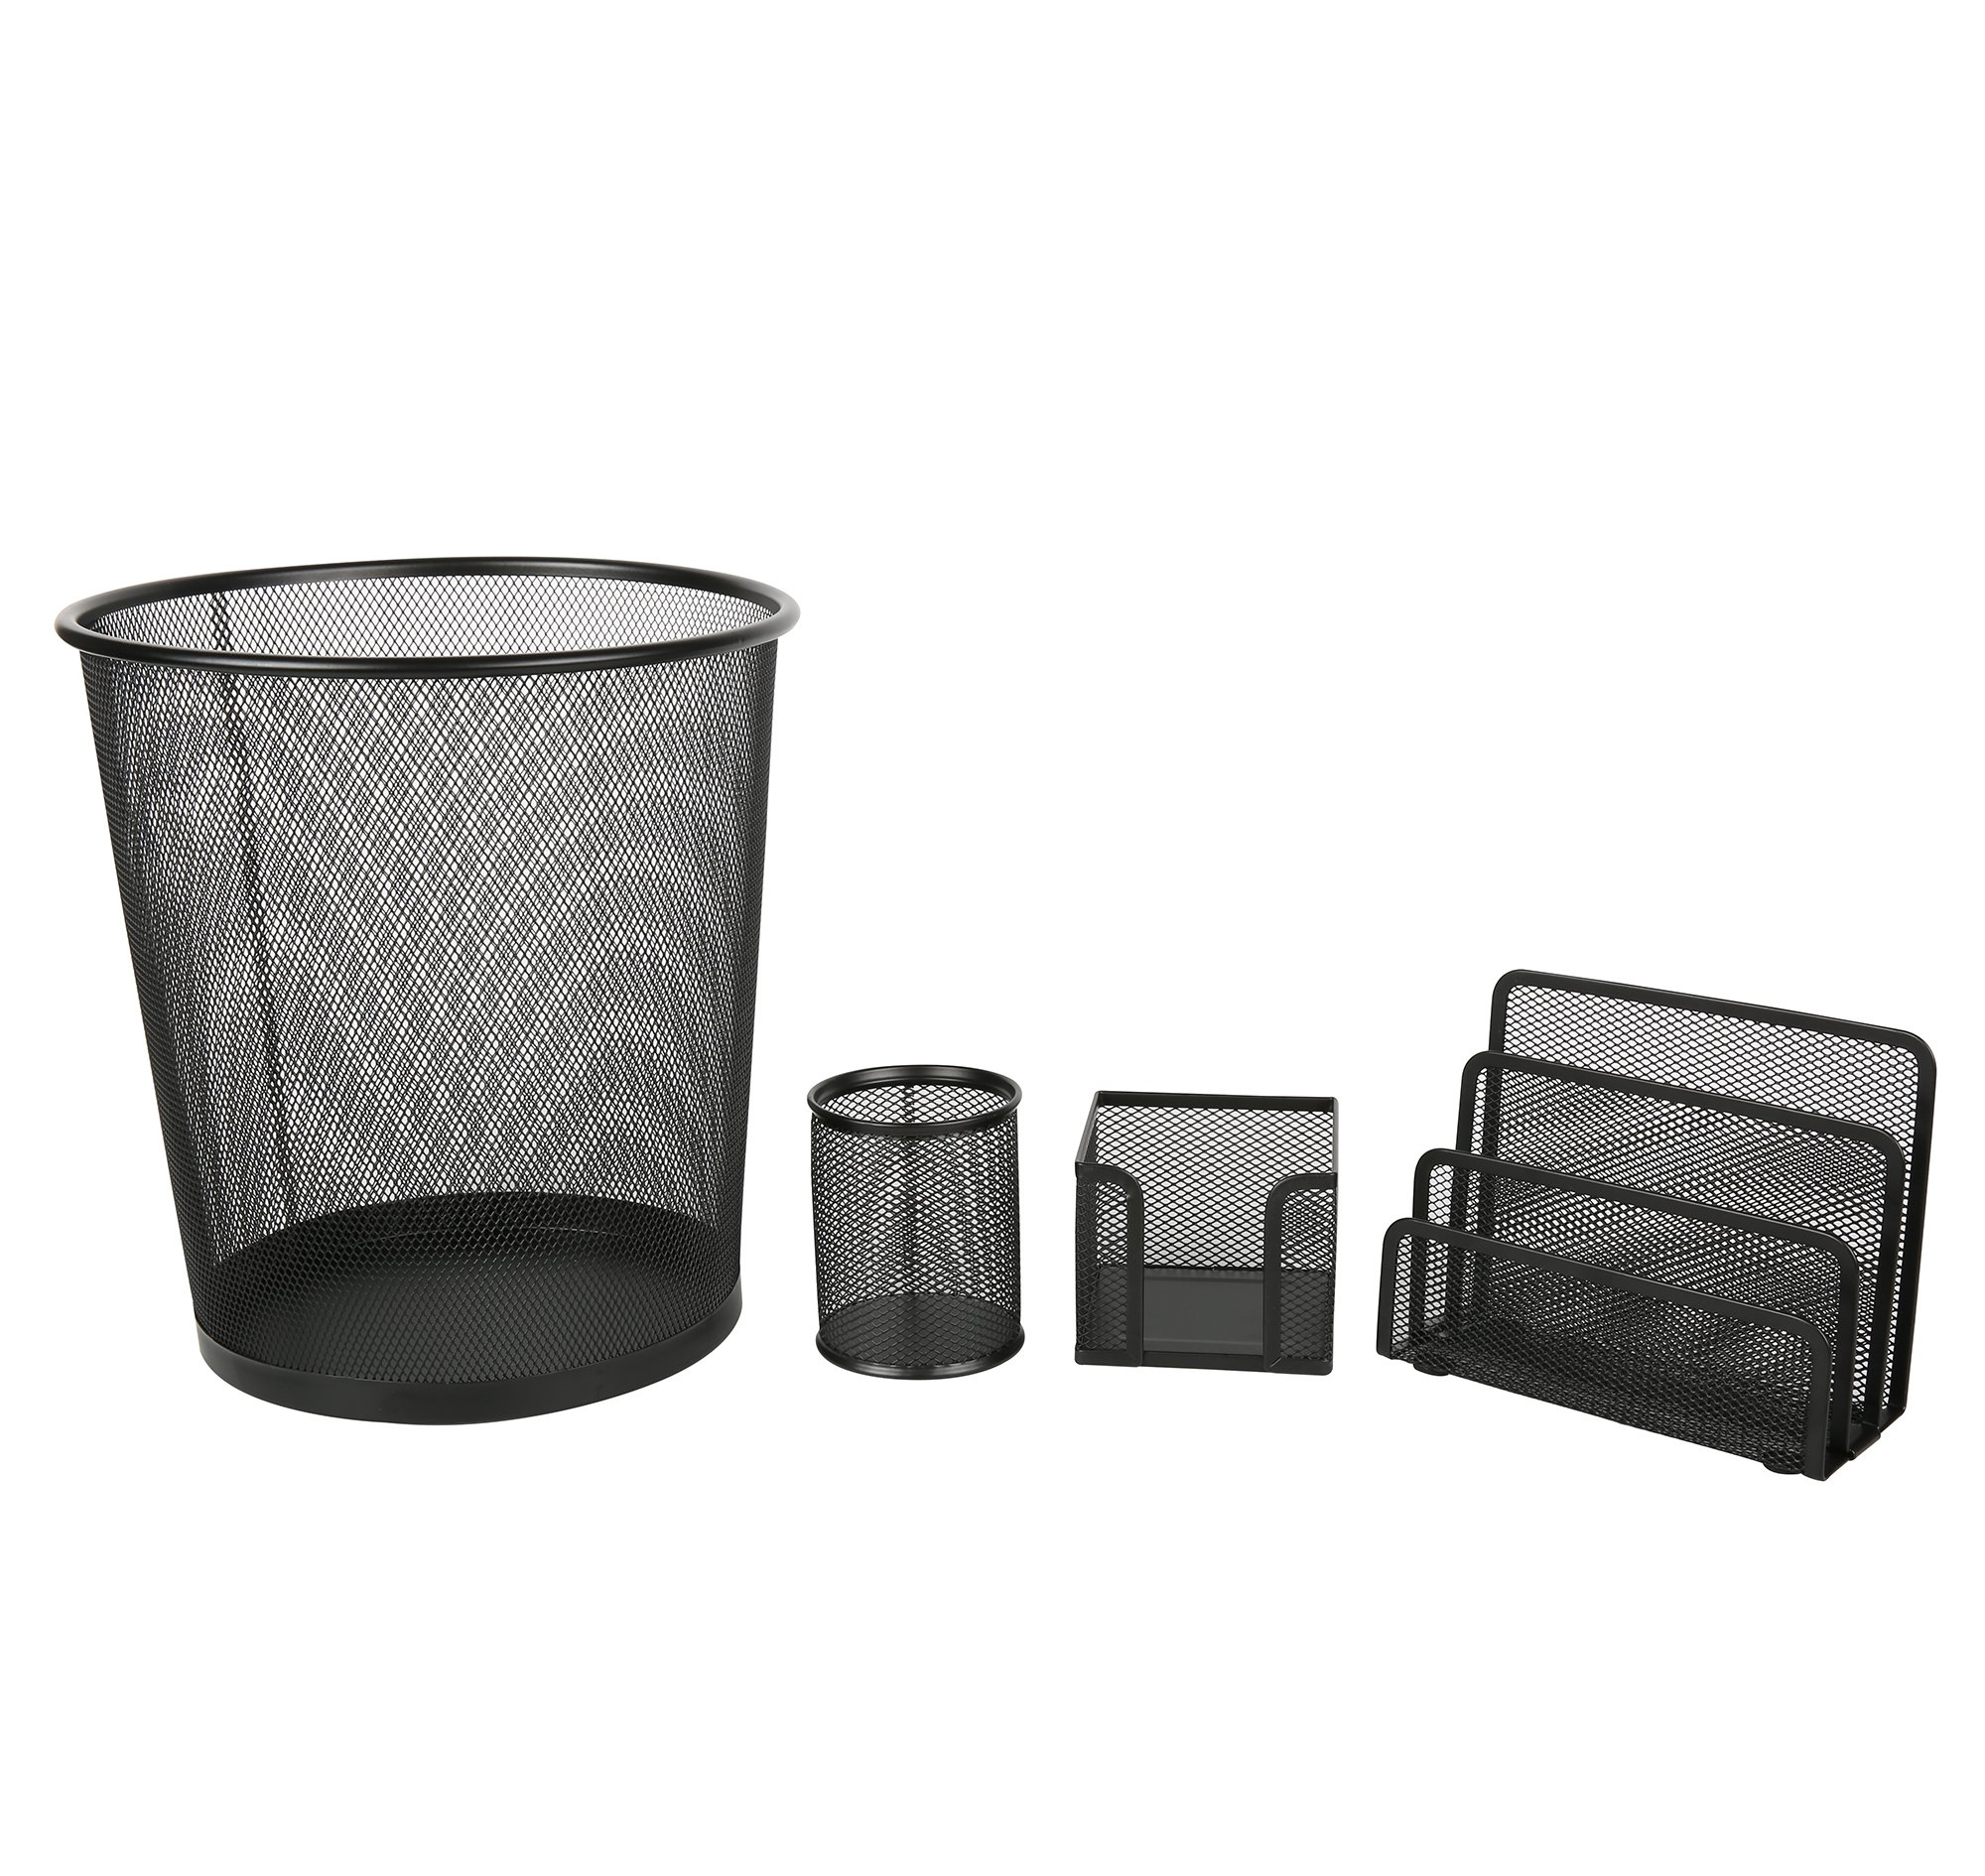 Exerz Deluxe Mesh Office Set 4 Pcs – Include Mesh Bin, Letter Shelf/Holder/Rack, Memo Holder, Pen Holder/Pot. Sleek and Anti-Scratch Design, Suitable for Office, Home Office, School, Study -Black by Exerz